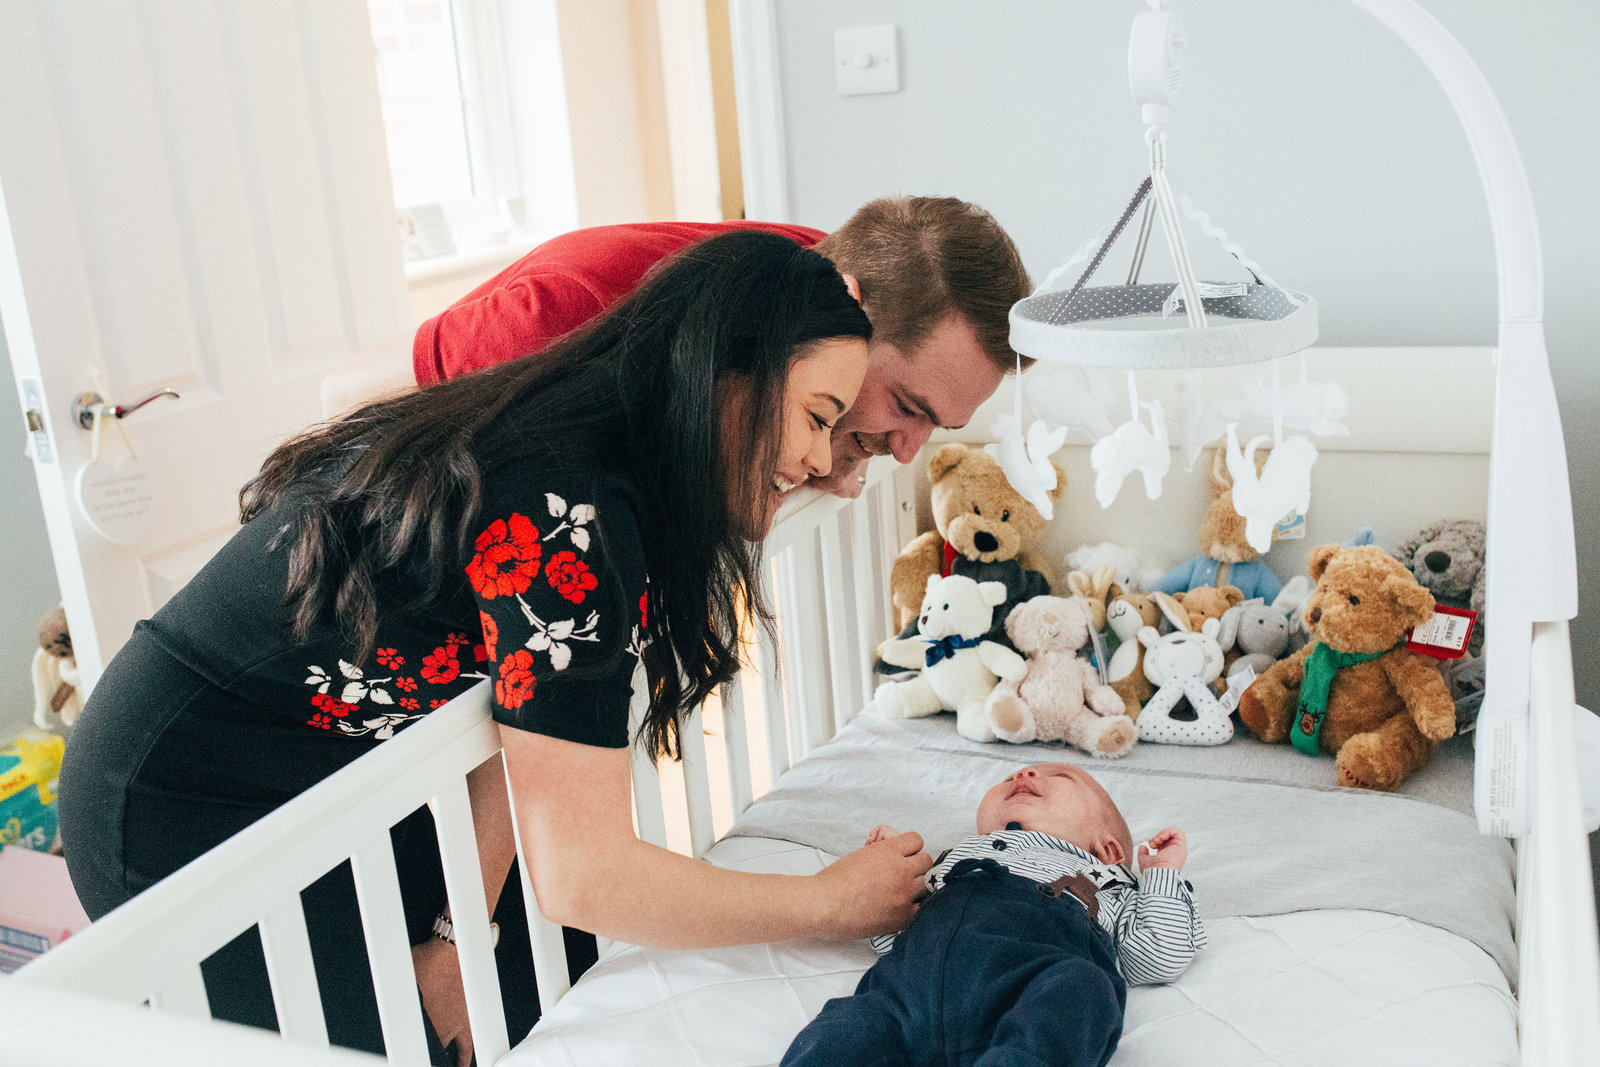 Smiling natural new parents leaning over cot at their newborn baby